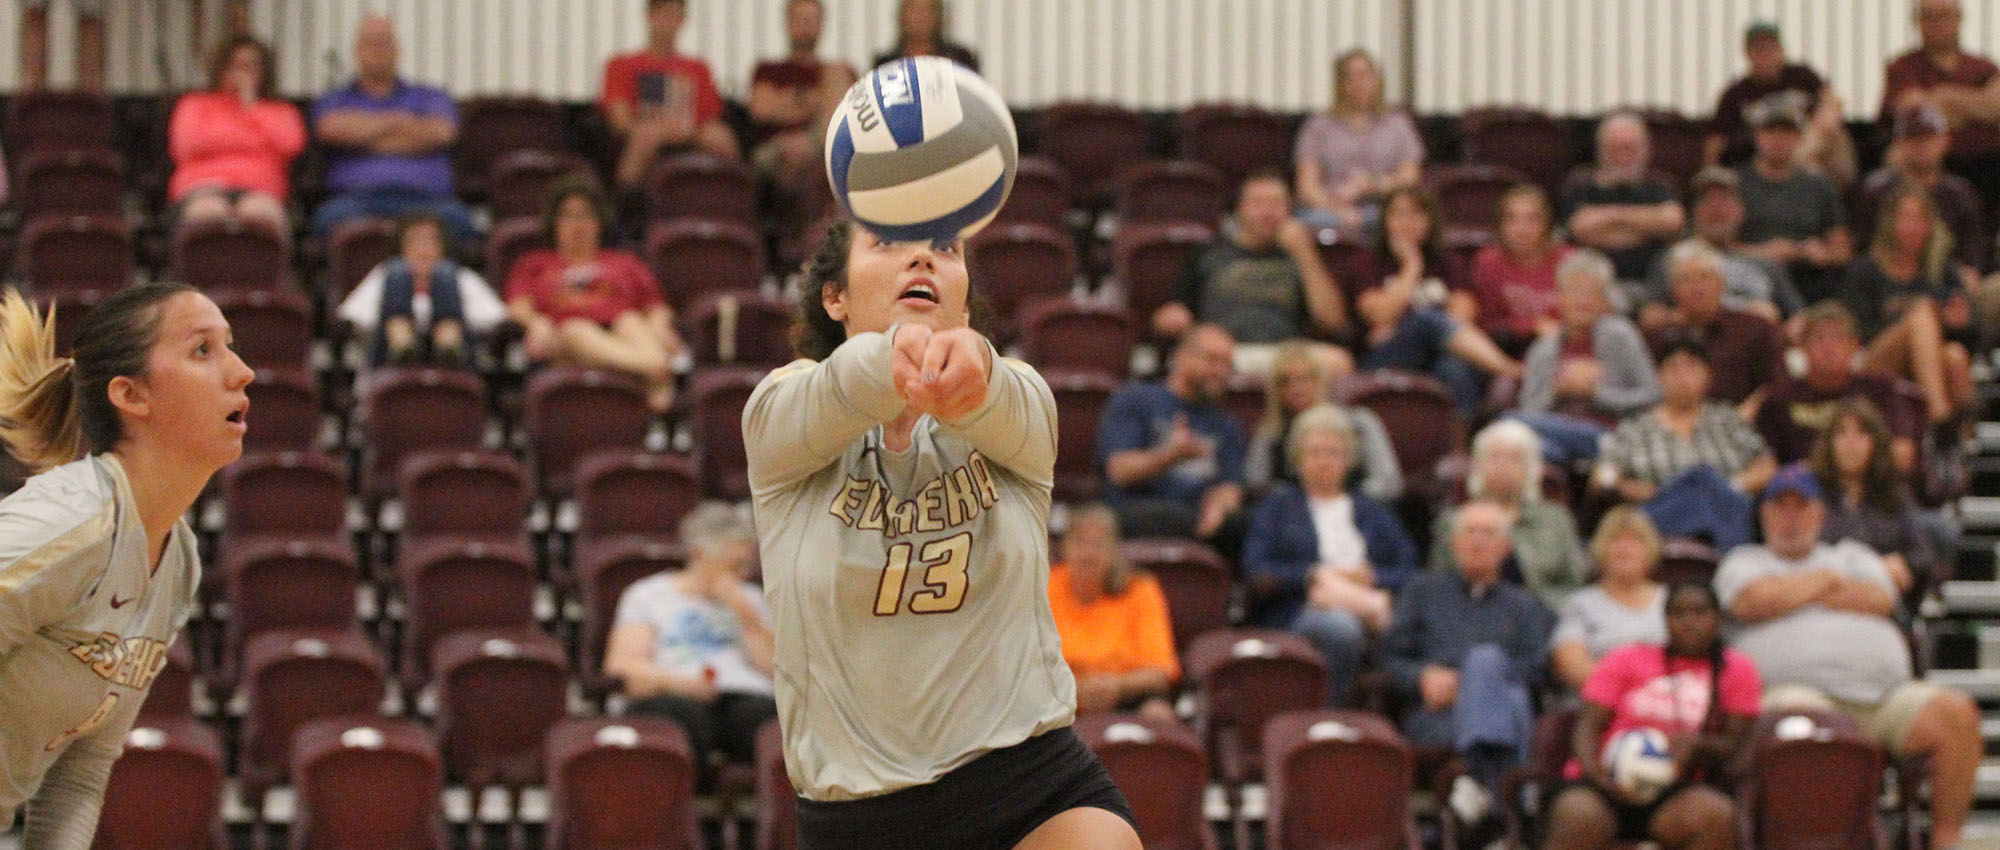 Eureka Volleyball Falls in Four at Principia